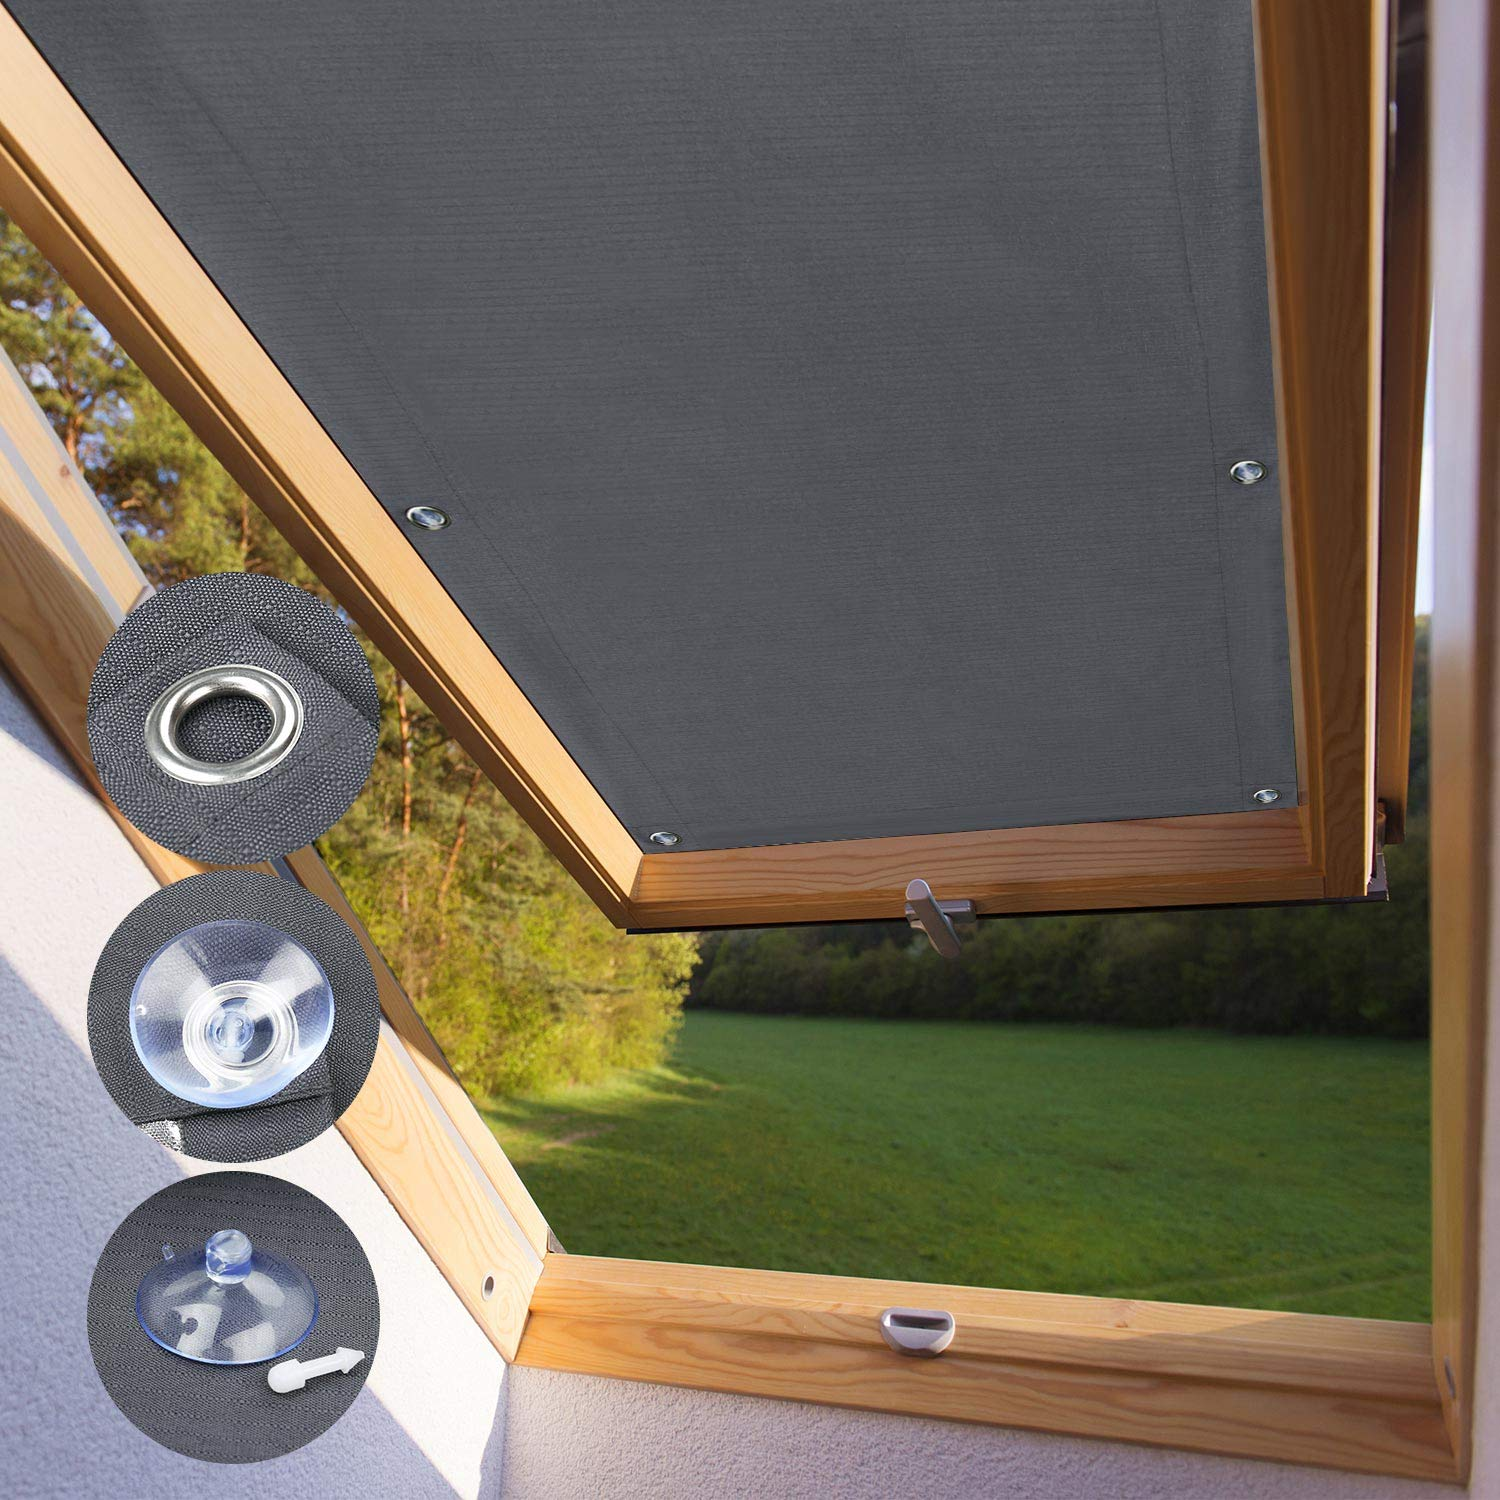 Kinlo 96 93cm Blackout Roof Skylight Blind Window Curtain For Velux S06 606 Roof Windows With Sucker Structure No Drill Silver Plated Easy Fit Dark Grey Buy Online In Cayman Islands At